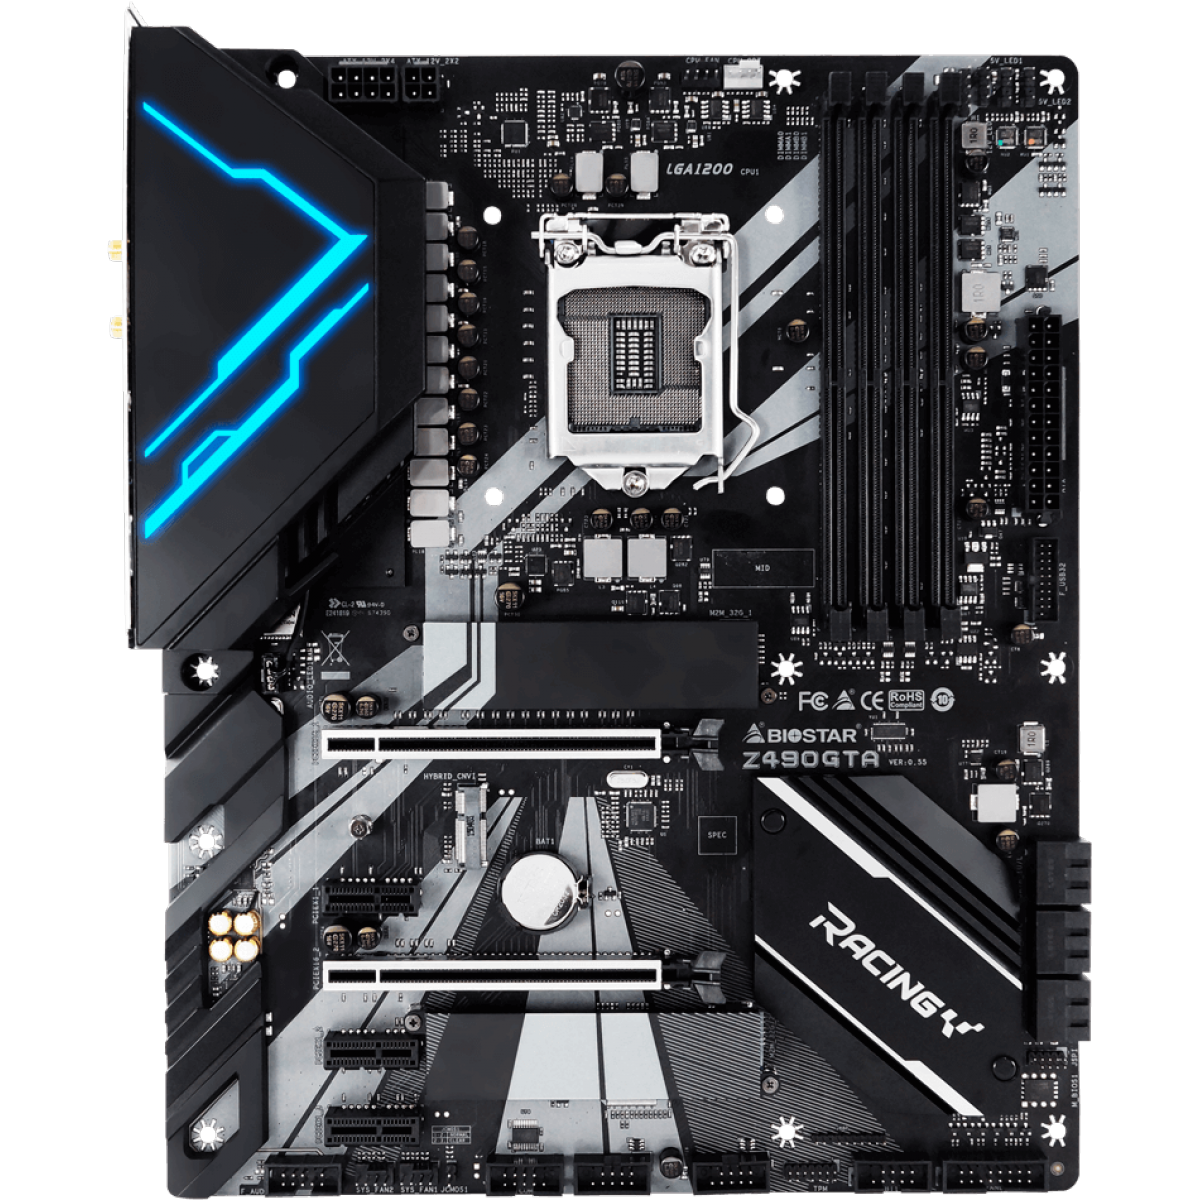 Placa Mãe Biostar Racing Z490GTA, Chipset Z490, Intel 1200, ATX, DDR4